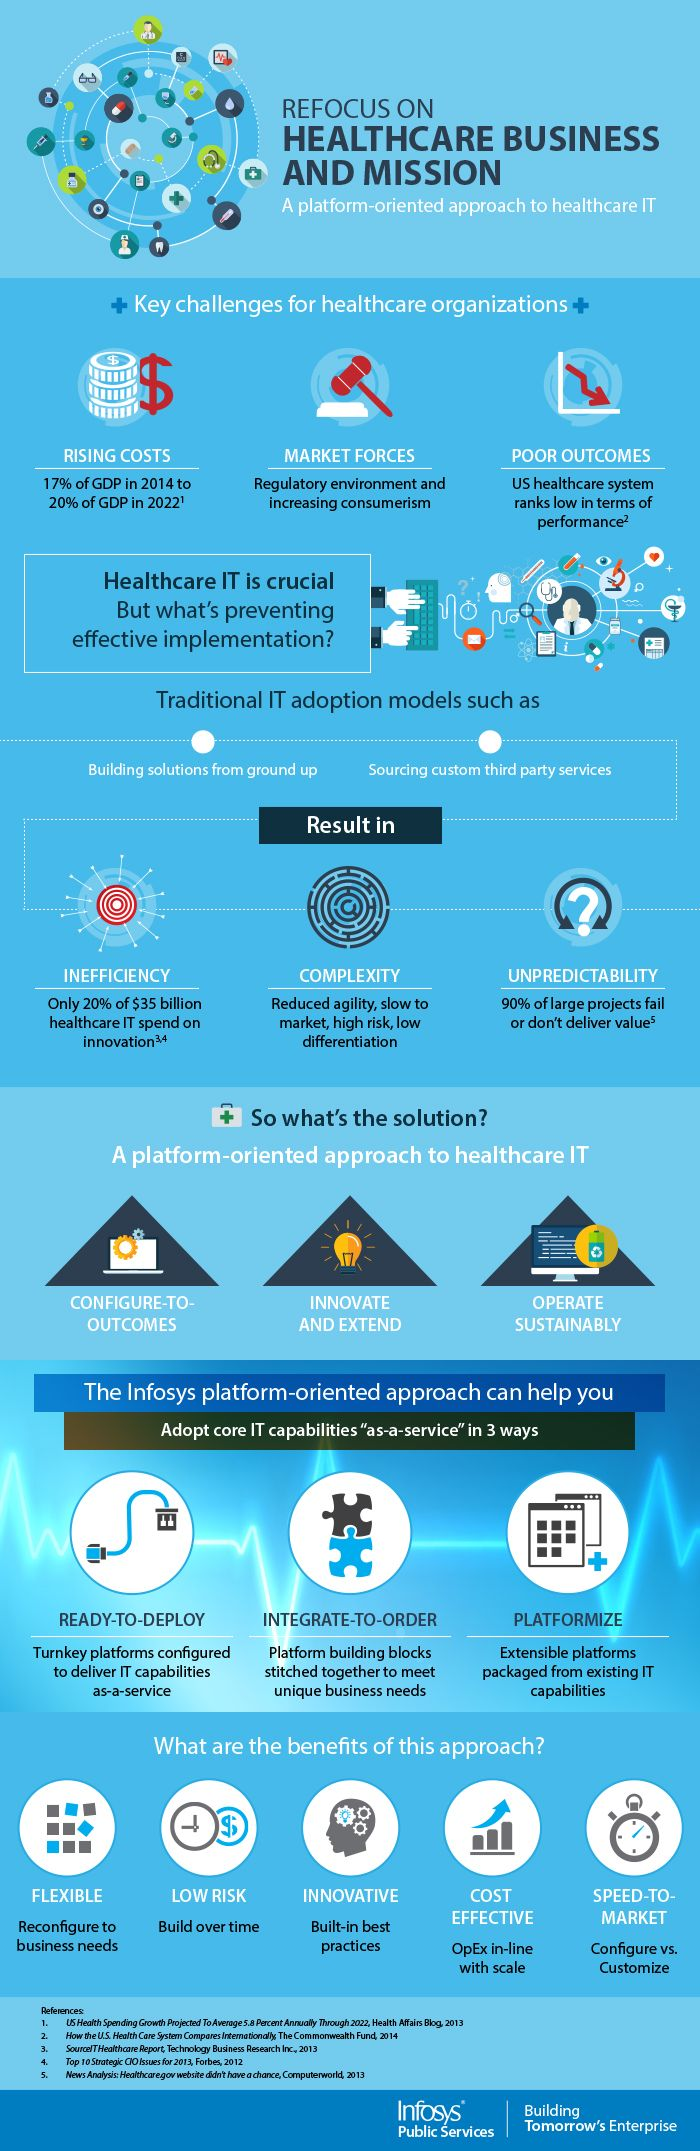 A Platform-Oriented Approach to Healthcare IT | New Visions Healthcare Blog #healthcare #HealthIT #sustainability #innovation - www.healthcoverageally.com